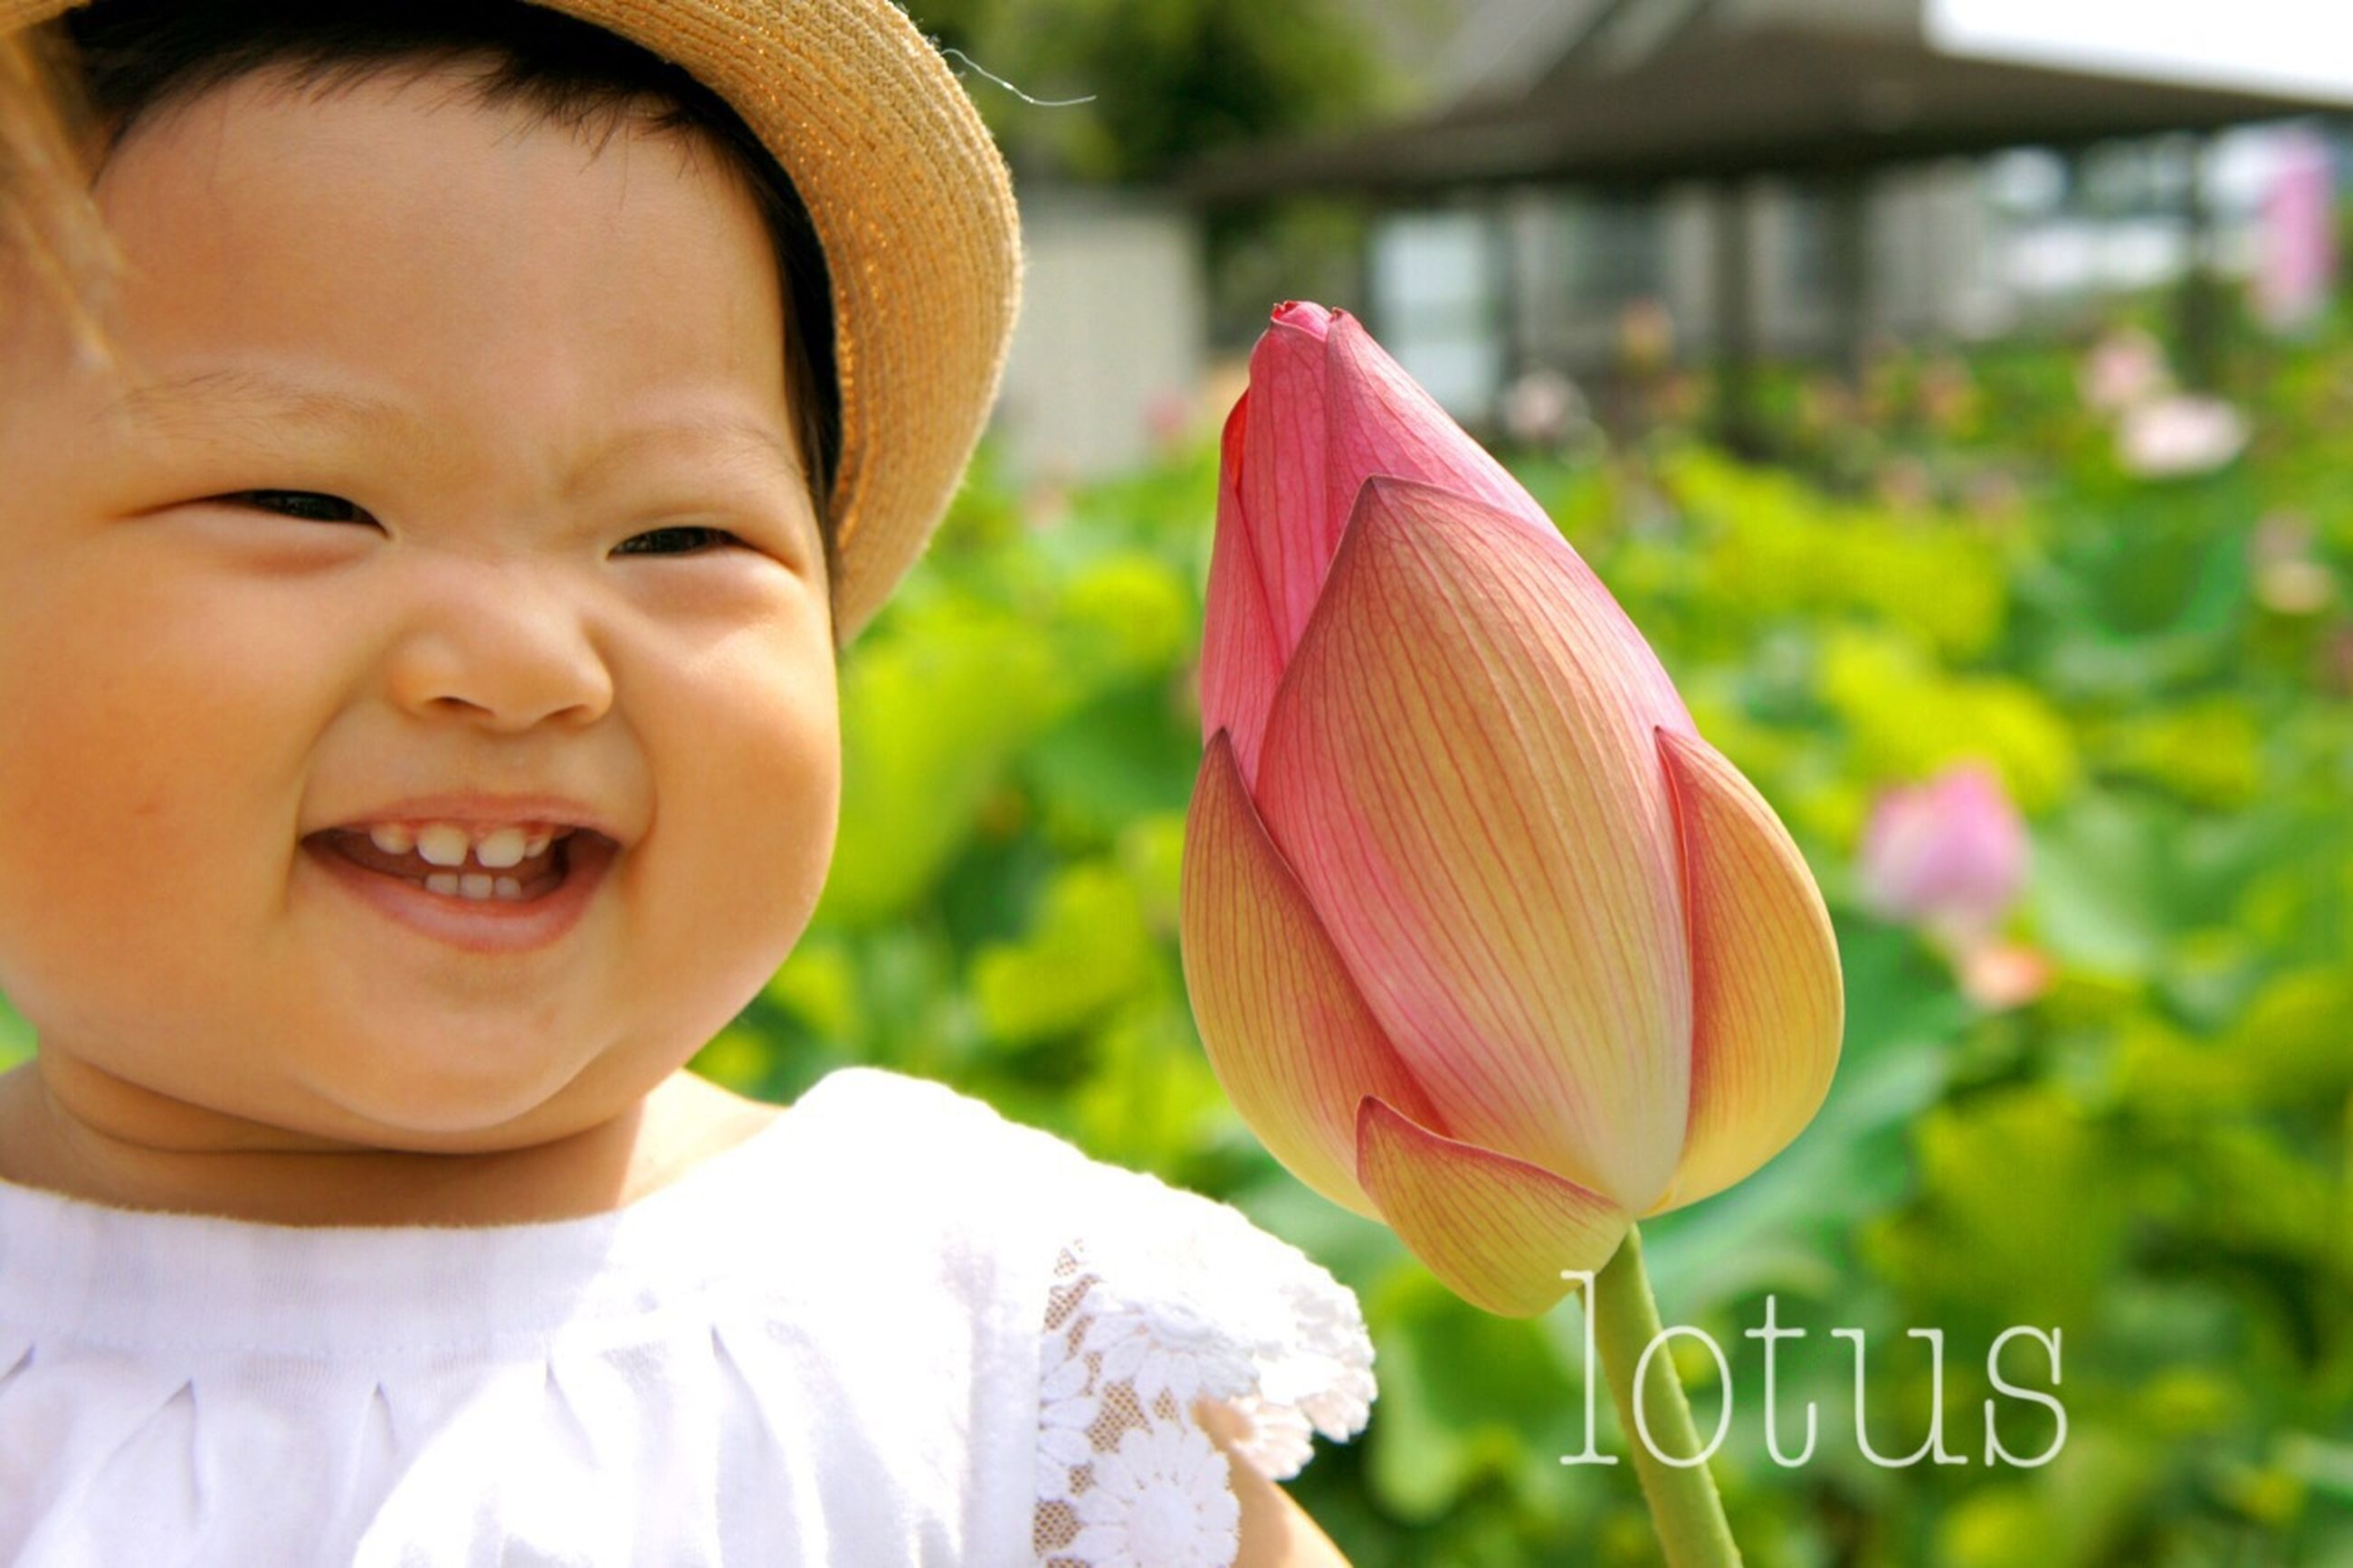 childhood, elementary age, innocence, cute, focus on foreground, person, girls, boys, close-up, leisure activity, lifestyles, babyhood, smiling, headshot, front view, baby, happiness, toddler